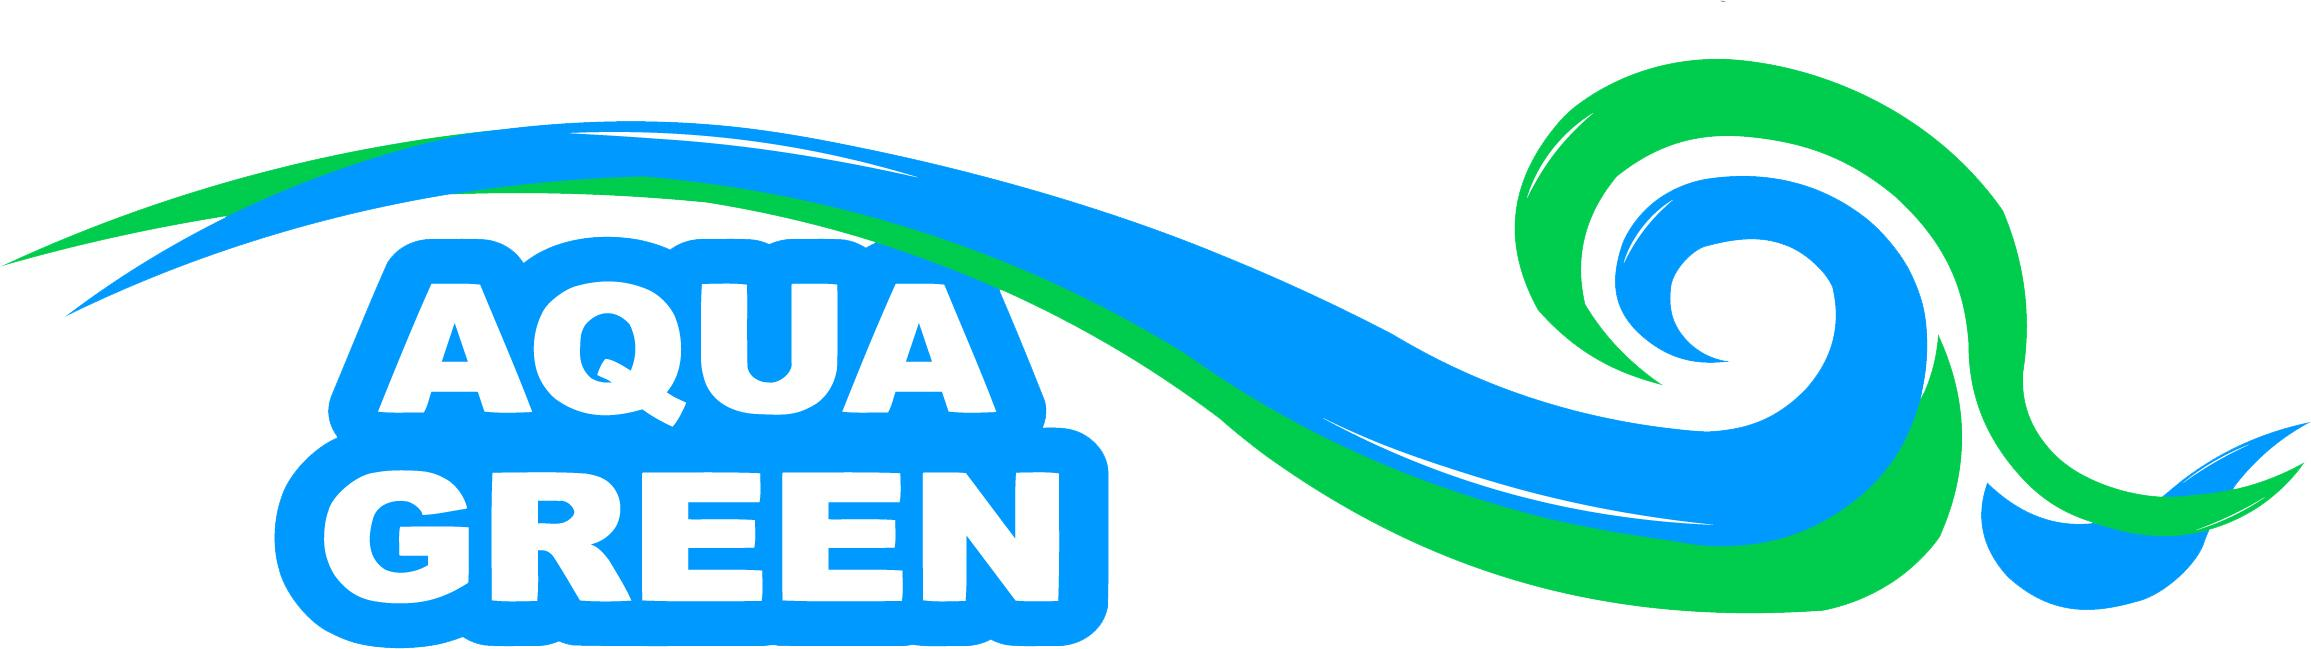 aquagreen logo_1_8